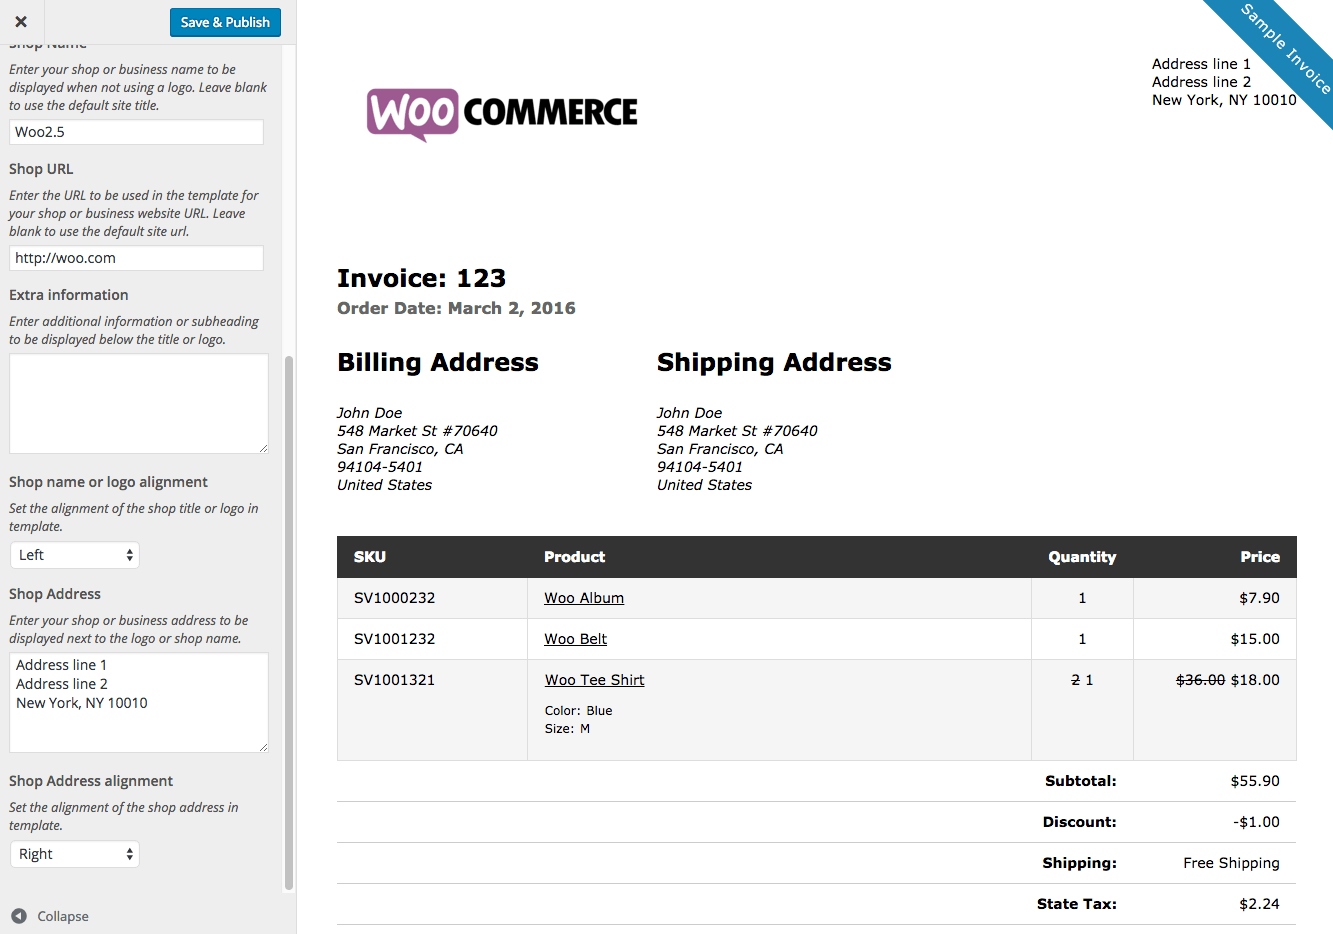 Usdgus  Prepossessing Print Invoices Amp Packing Lists  Woocommerce With Gorgeous Woocommerce Print Invoices  Packing Lists Customizer With Extraordinary Fake Invoice Maker Also Sample Invoice For Professional Services In Addition Invoice Funding Companies And Excel Template For Invoice As Well As Verizon Invoice Additionally Pdf Invoices From Woocommercecom With Usdgus  Gorgeous Print Invoices Amp Packing Lists  Woocommerce With Extraordinary Woocommerce Print Invoices  Packing Lists Customizer And Prepossessing Fake Invoice Maker Also Sample Invoice For Professional Services In Addition Invoice Funding Companies From Woocommercecom